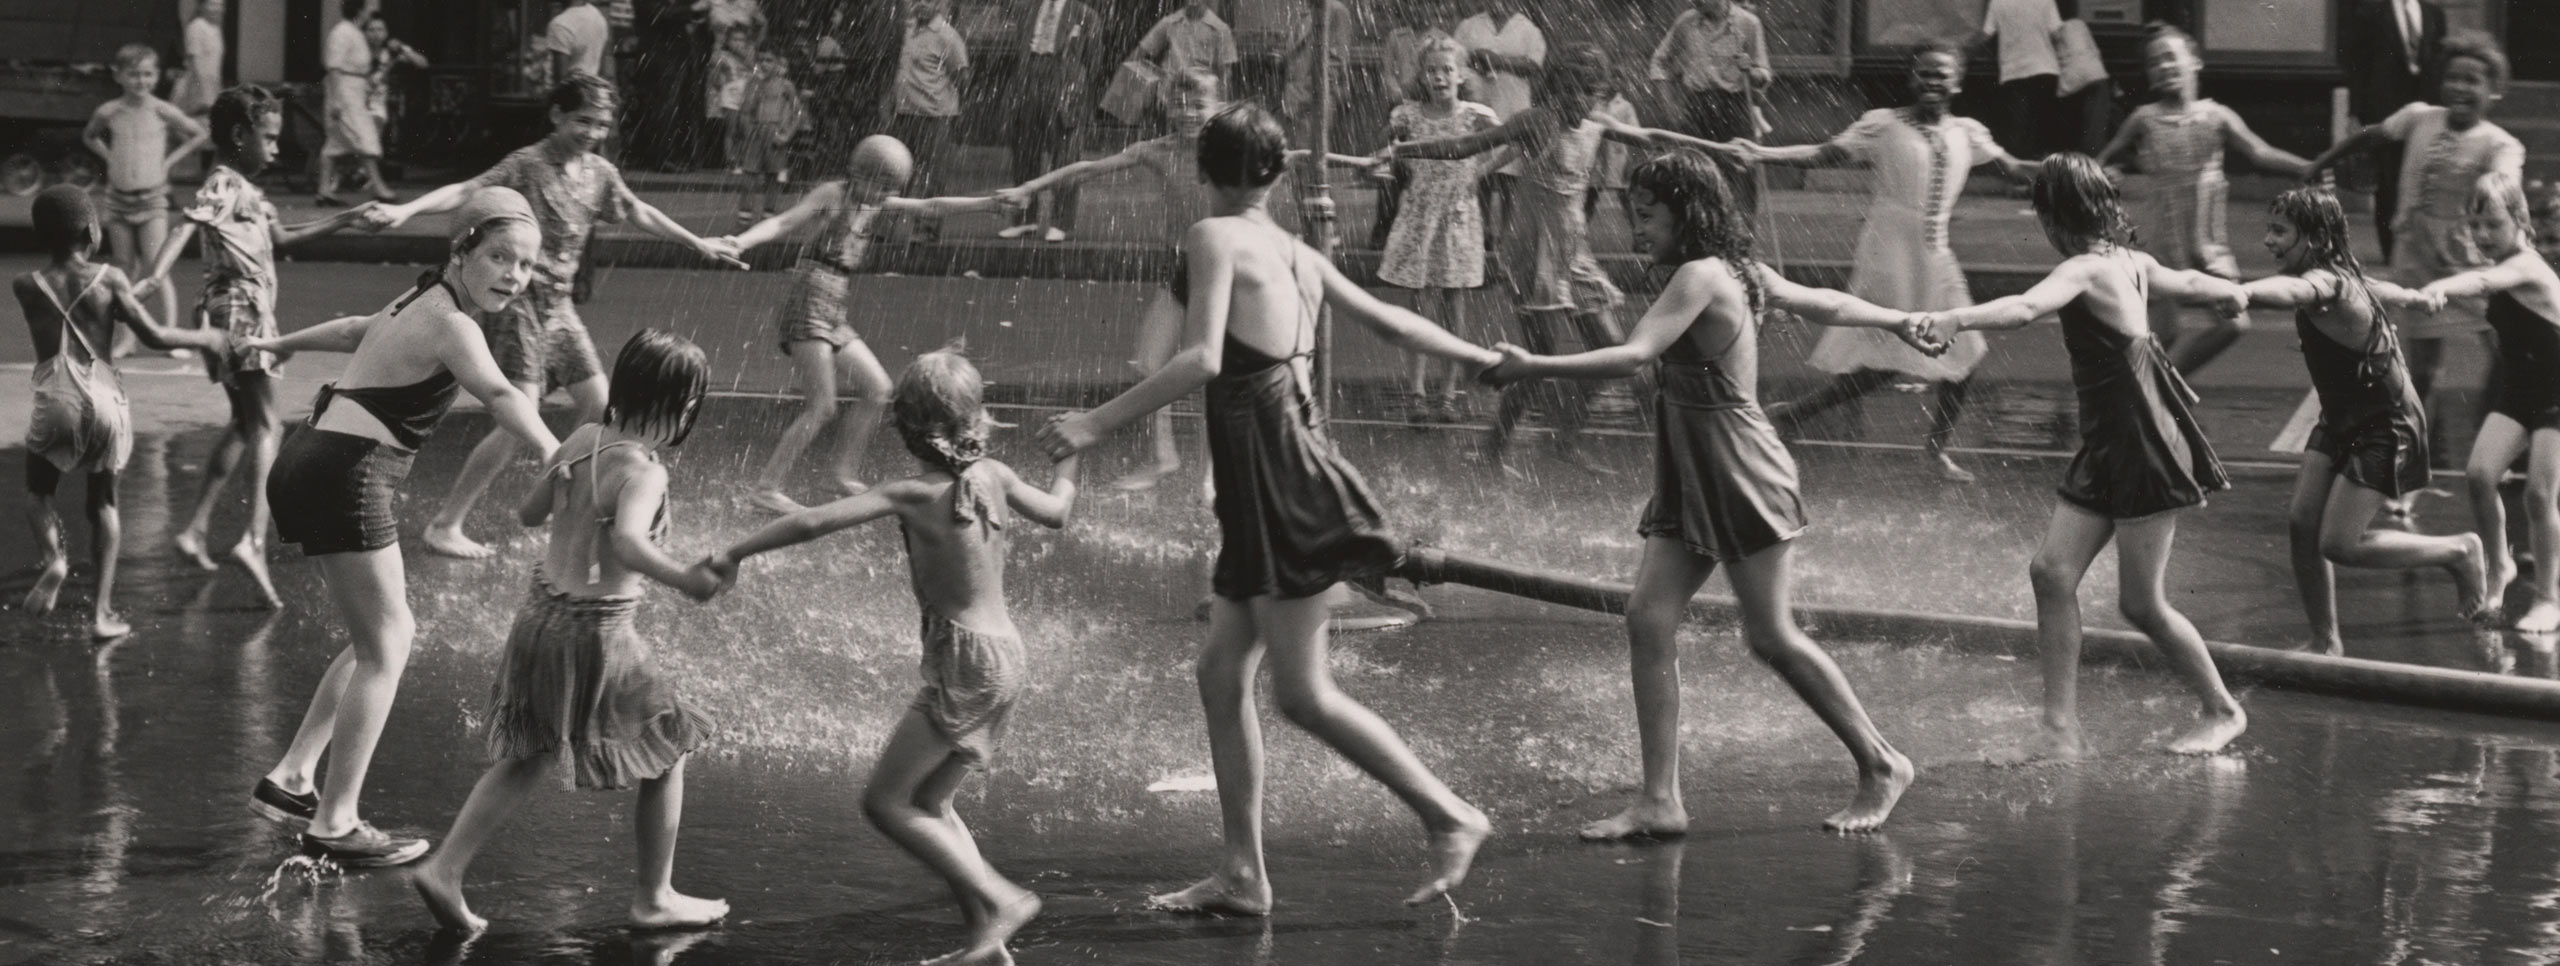 A group of children and teenagers hold hands in a circle as they run around a playground sprinkler